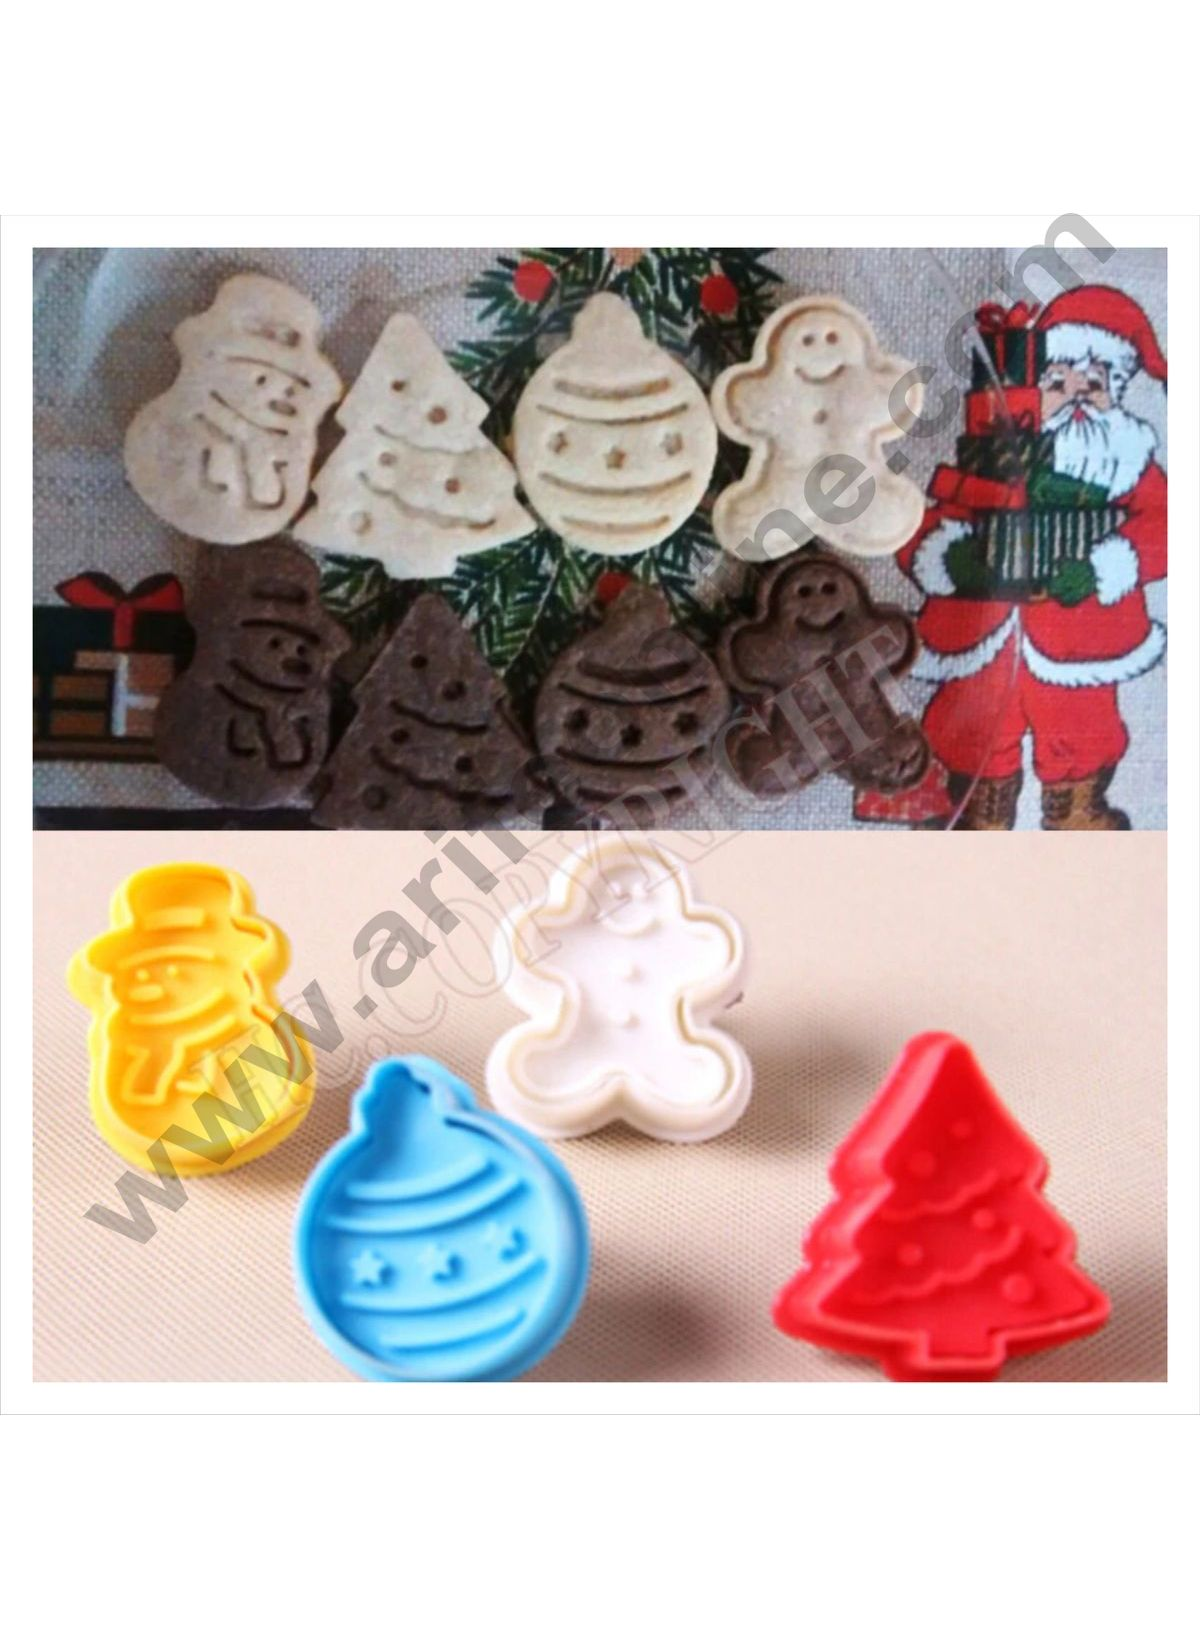 Cake Decor 4 Pc Christmas GingerBread Plastic Biscuit Cutter Plunger Cutter